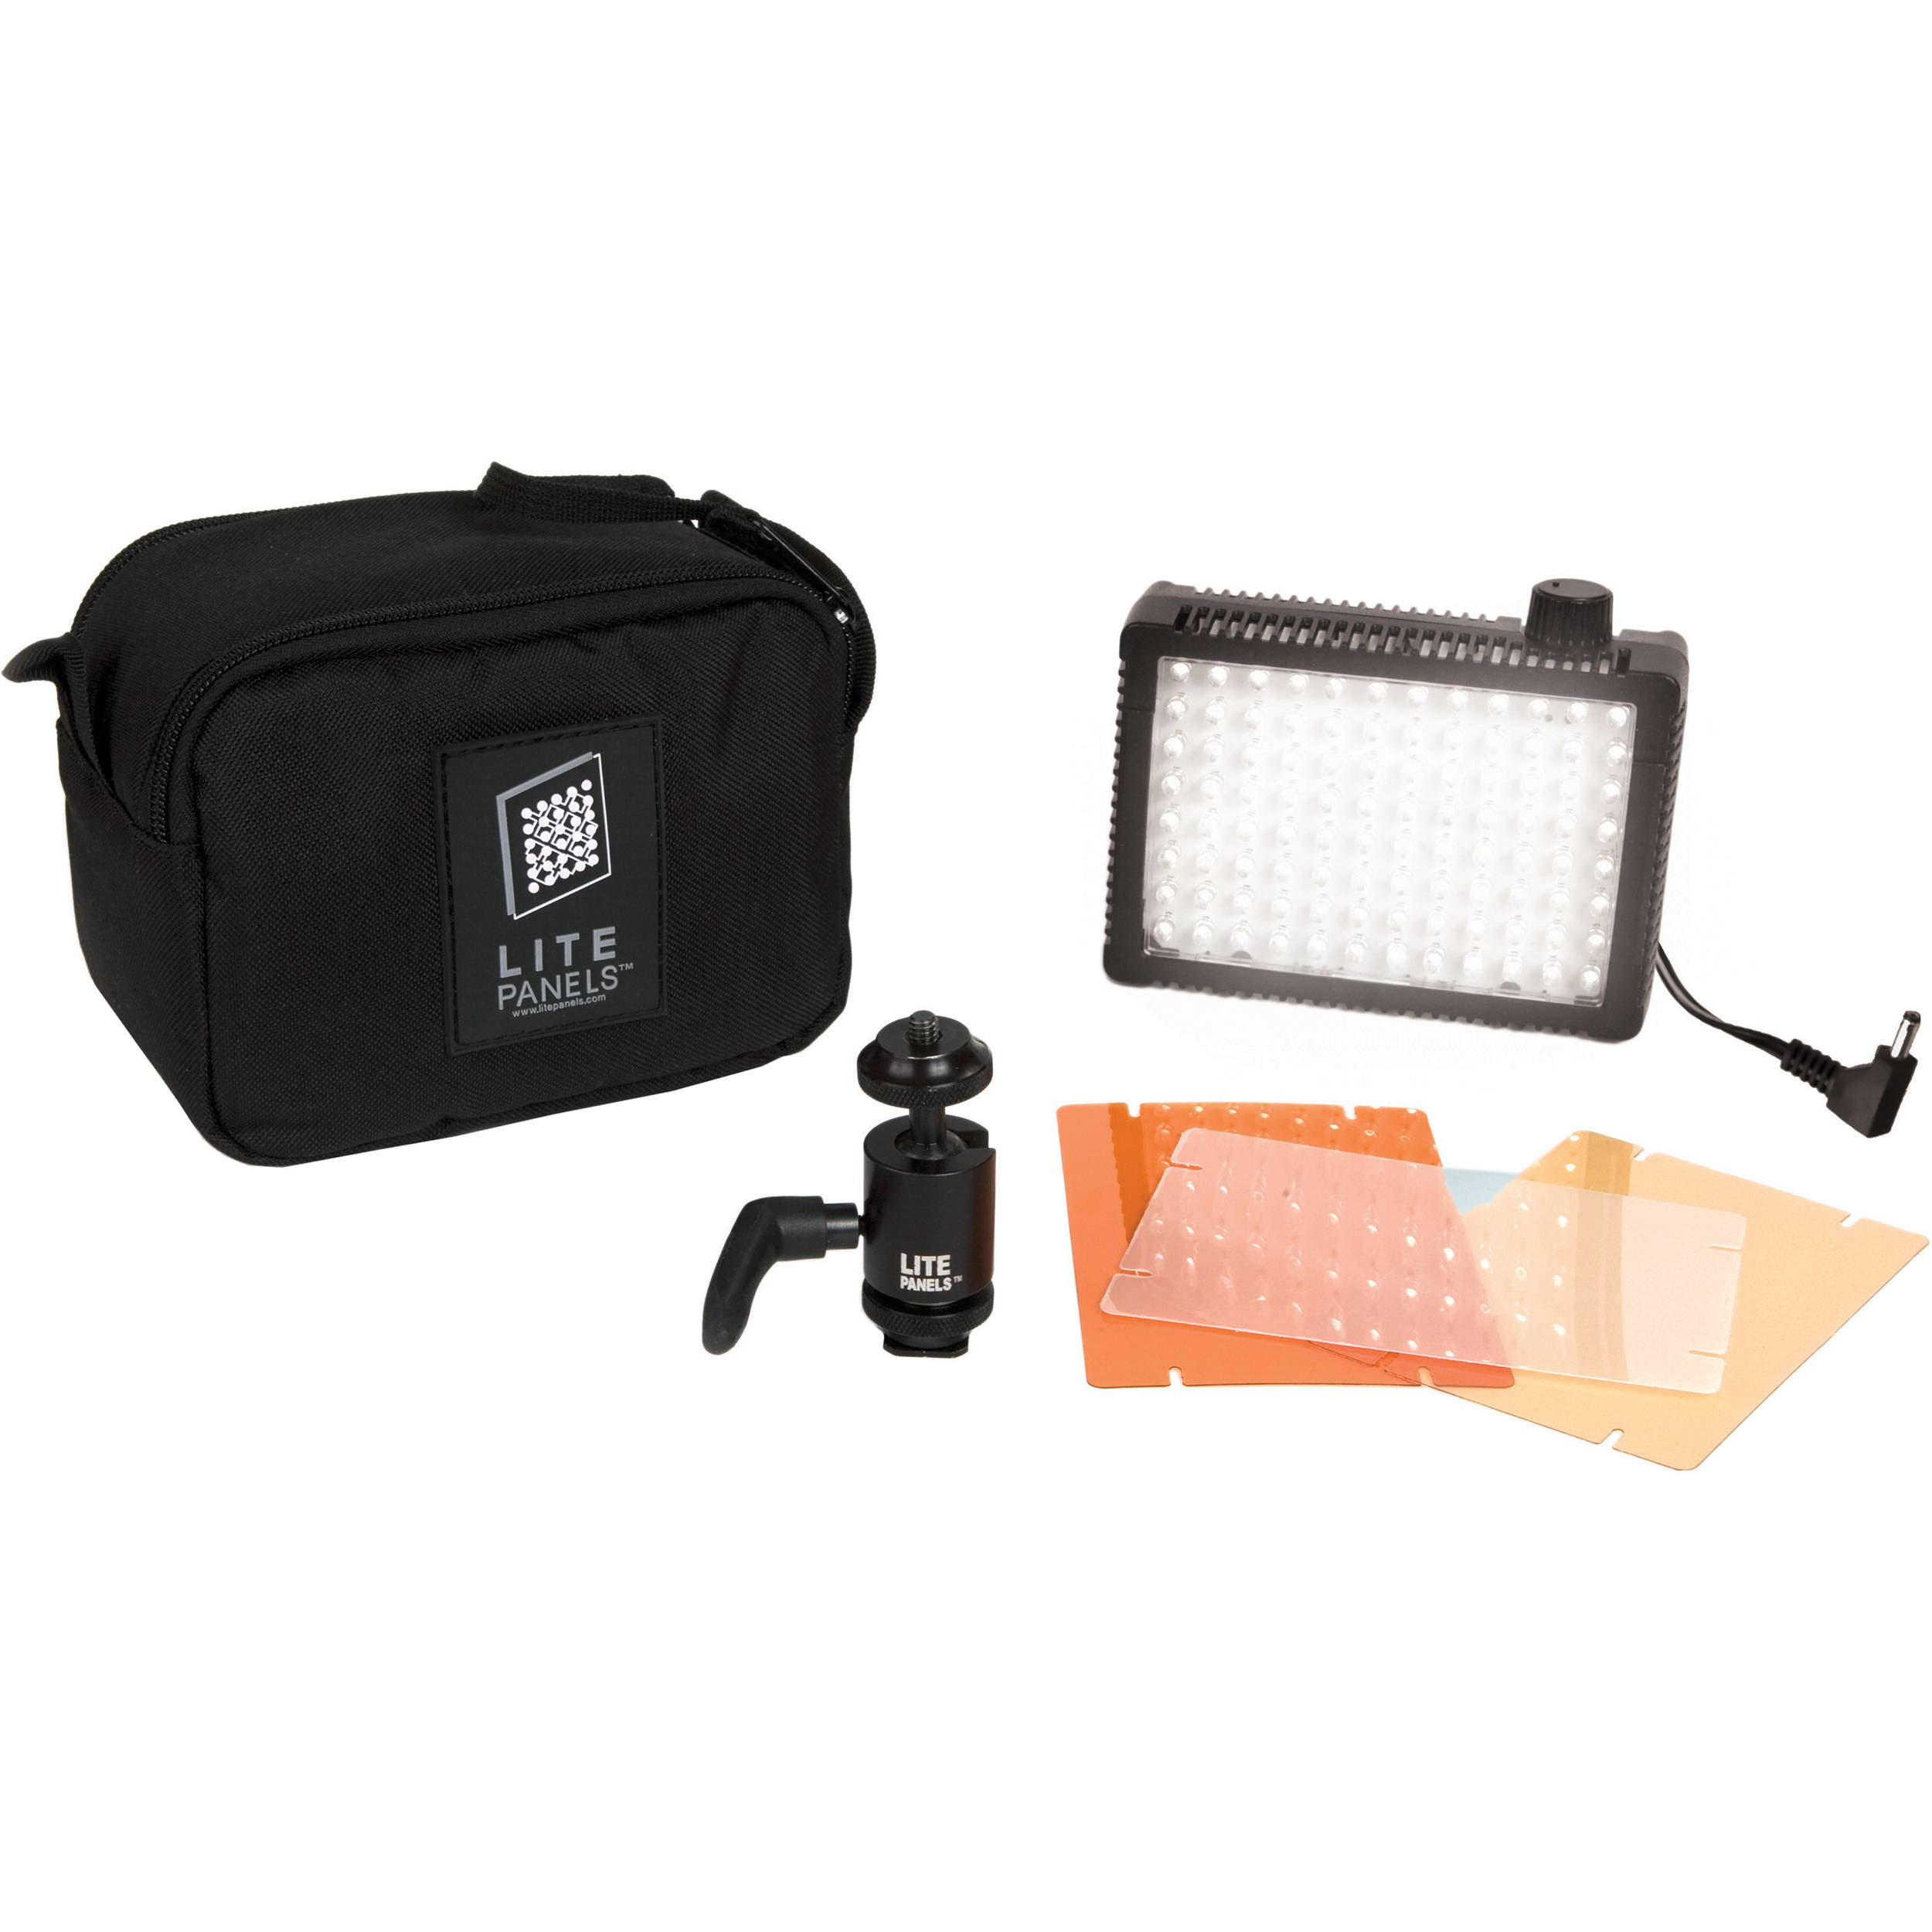 Litepanels MicroPro Kit